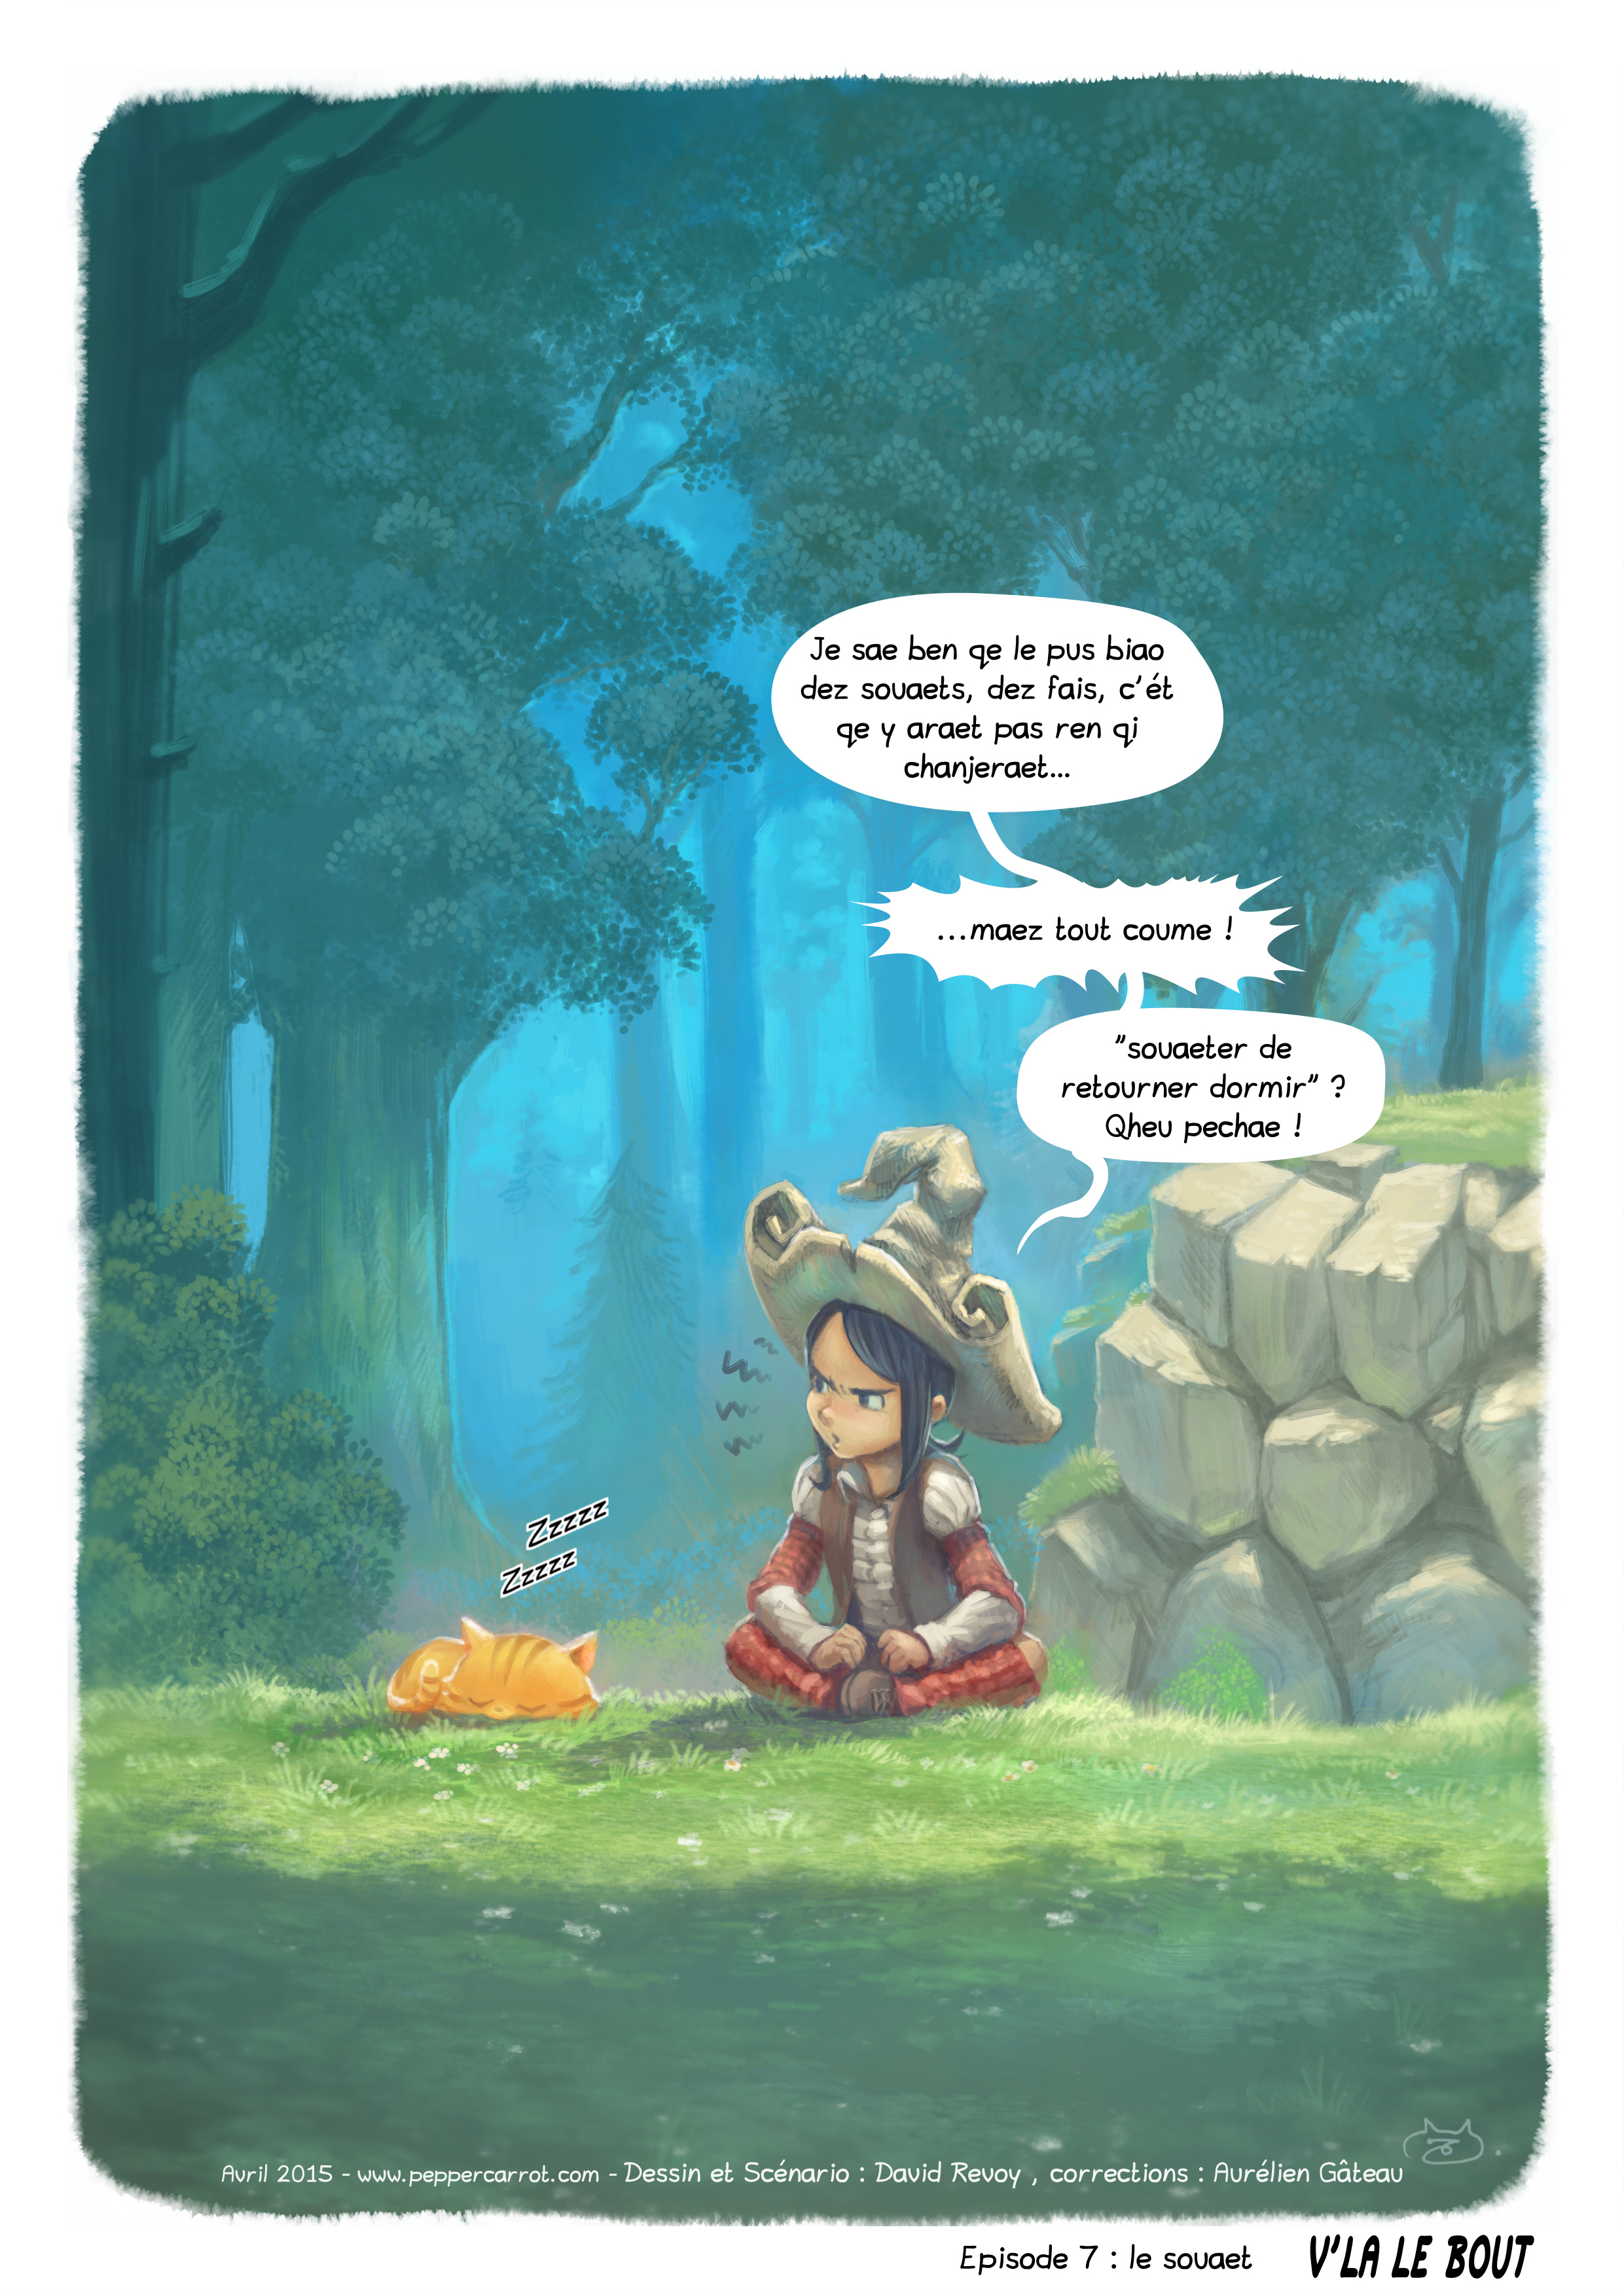 A webcomic page of Pepper&Carrot, episode 7 [go], page 5